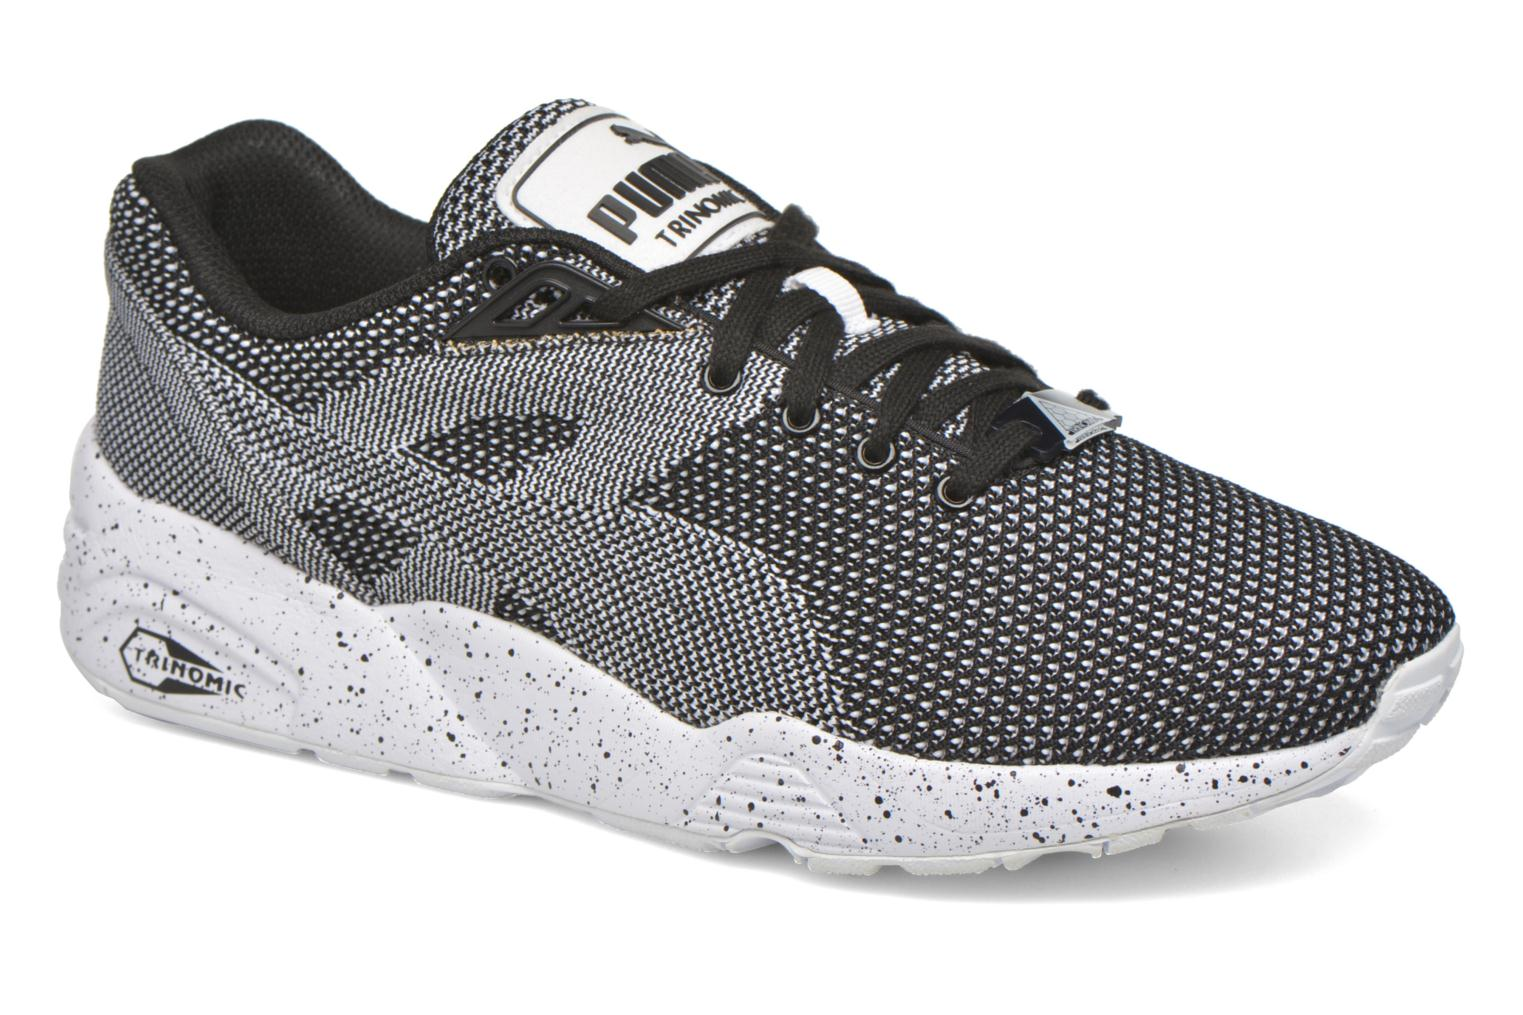 Puma Chaussures R698 Knit Speckle Chaussure Homme Puma soldes Opn4pBm